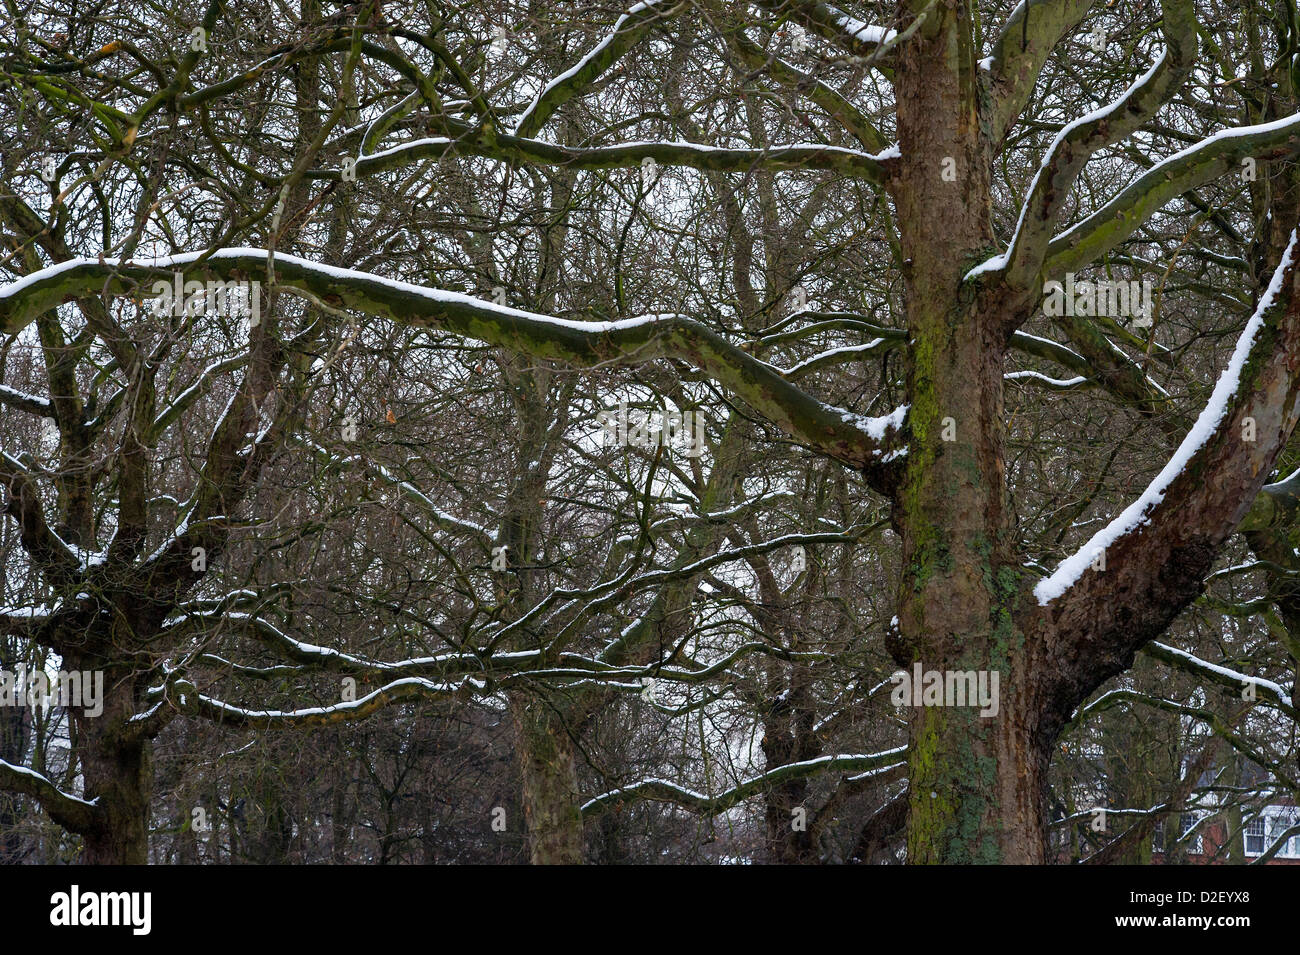 The chilly weather continues to affect South London, 22 January 2013 - Stock Image